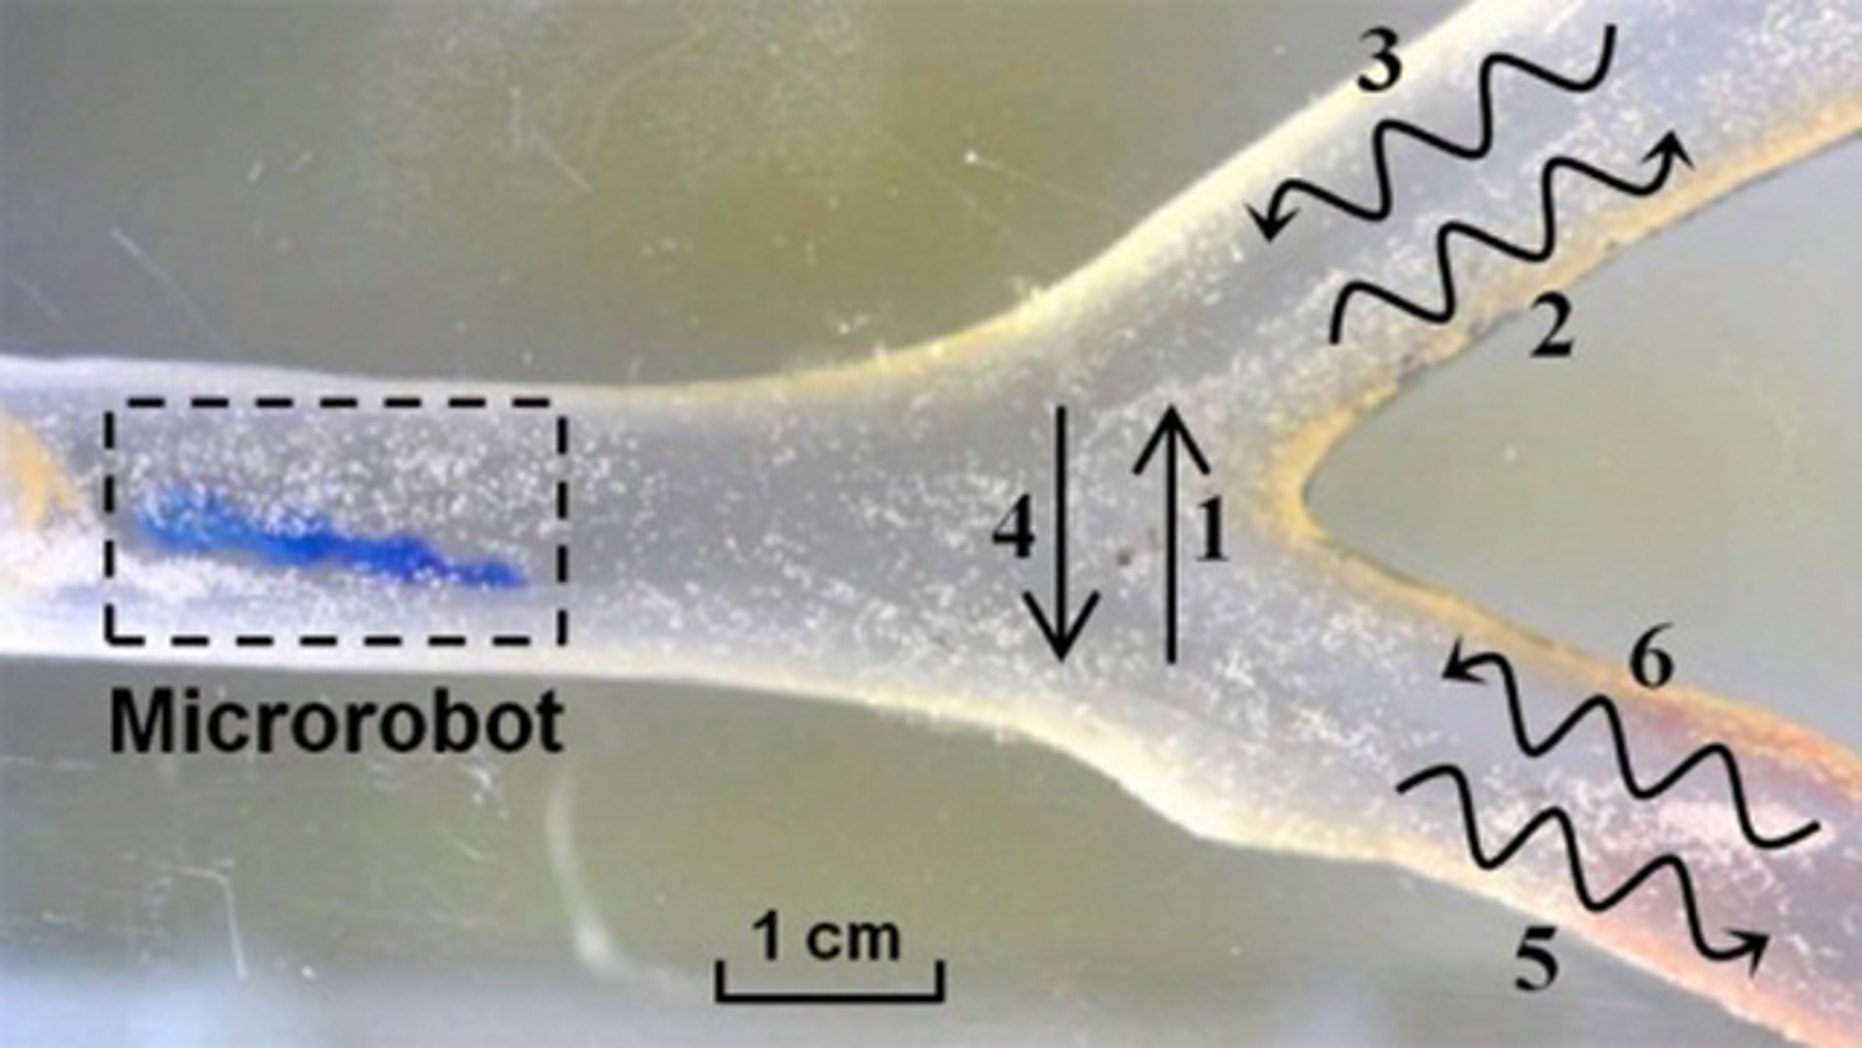 Researchers in South Korea demonstrated a microrobot moving through a structure intended to simulate the environment of a blood vessel. The microbot can move up and down (1 and 2), and wiggle through the simulated vessel in a helical motion (2, 3, 5, 6).